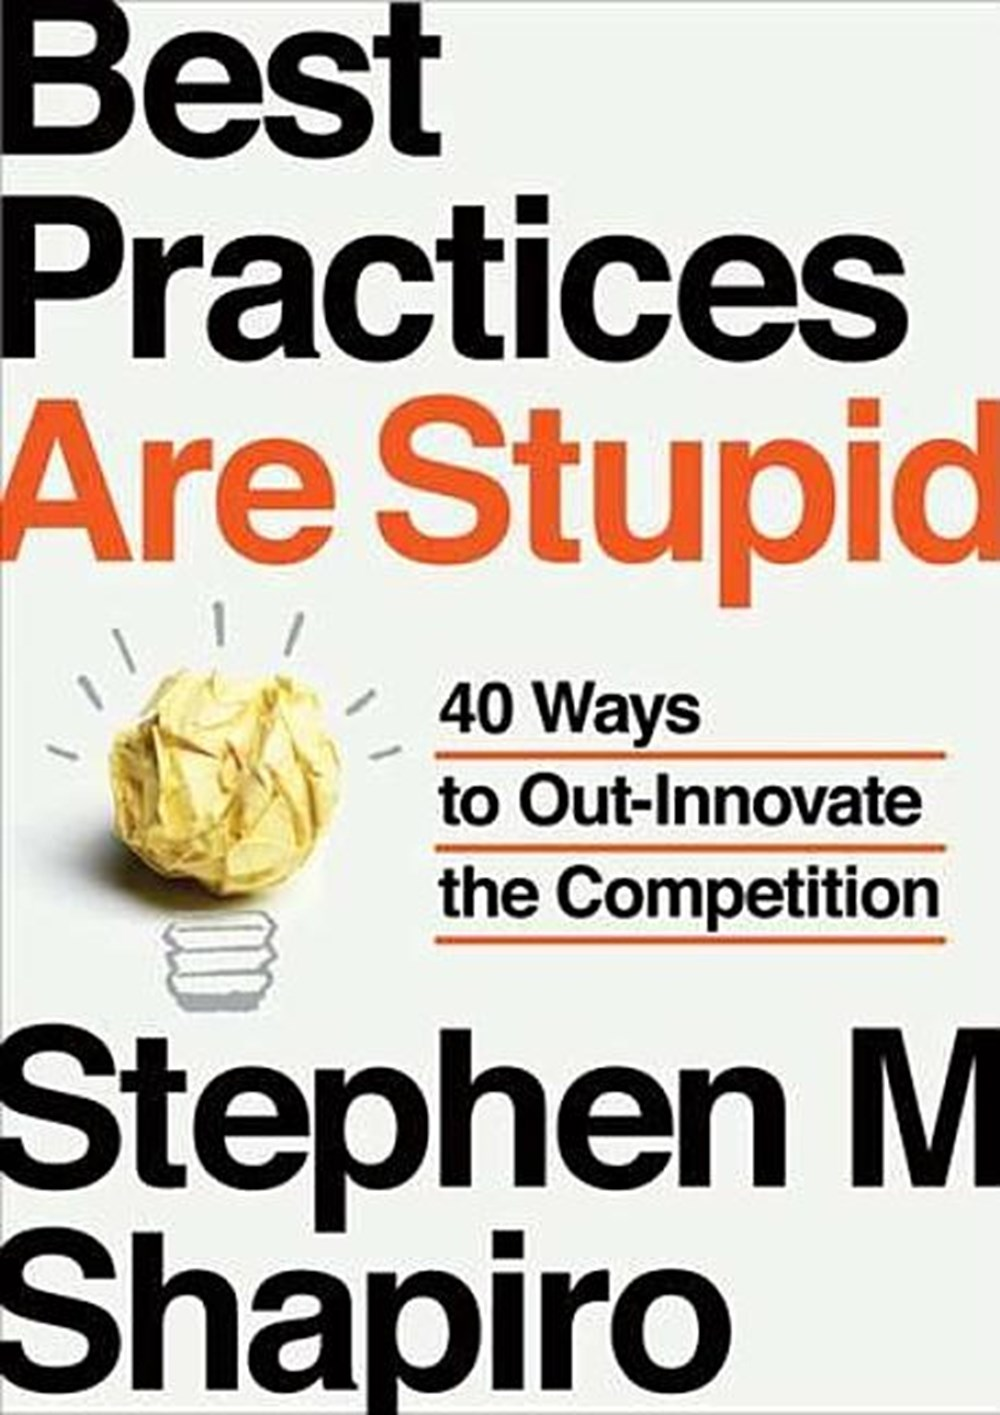 Best Practices Are Stupid 40 Ways to Out-Innovate the Competition